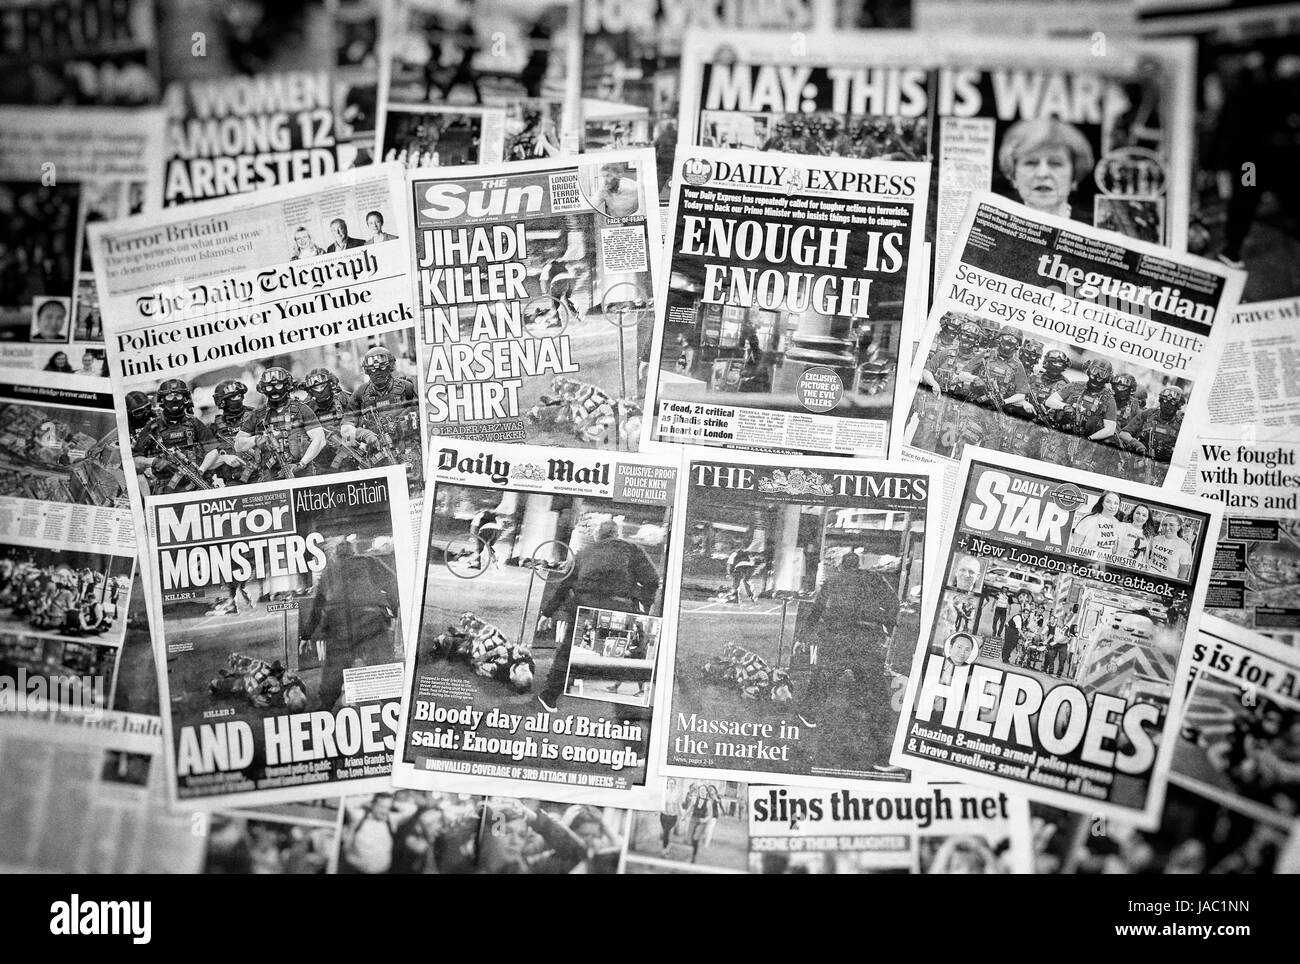 British newspaper front pages reporting on the Terrorist attack on London Bridge and Borough Market in which 7 people - Stock Image